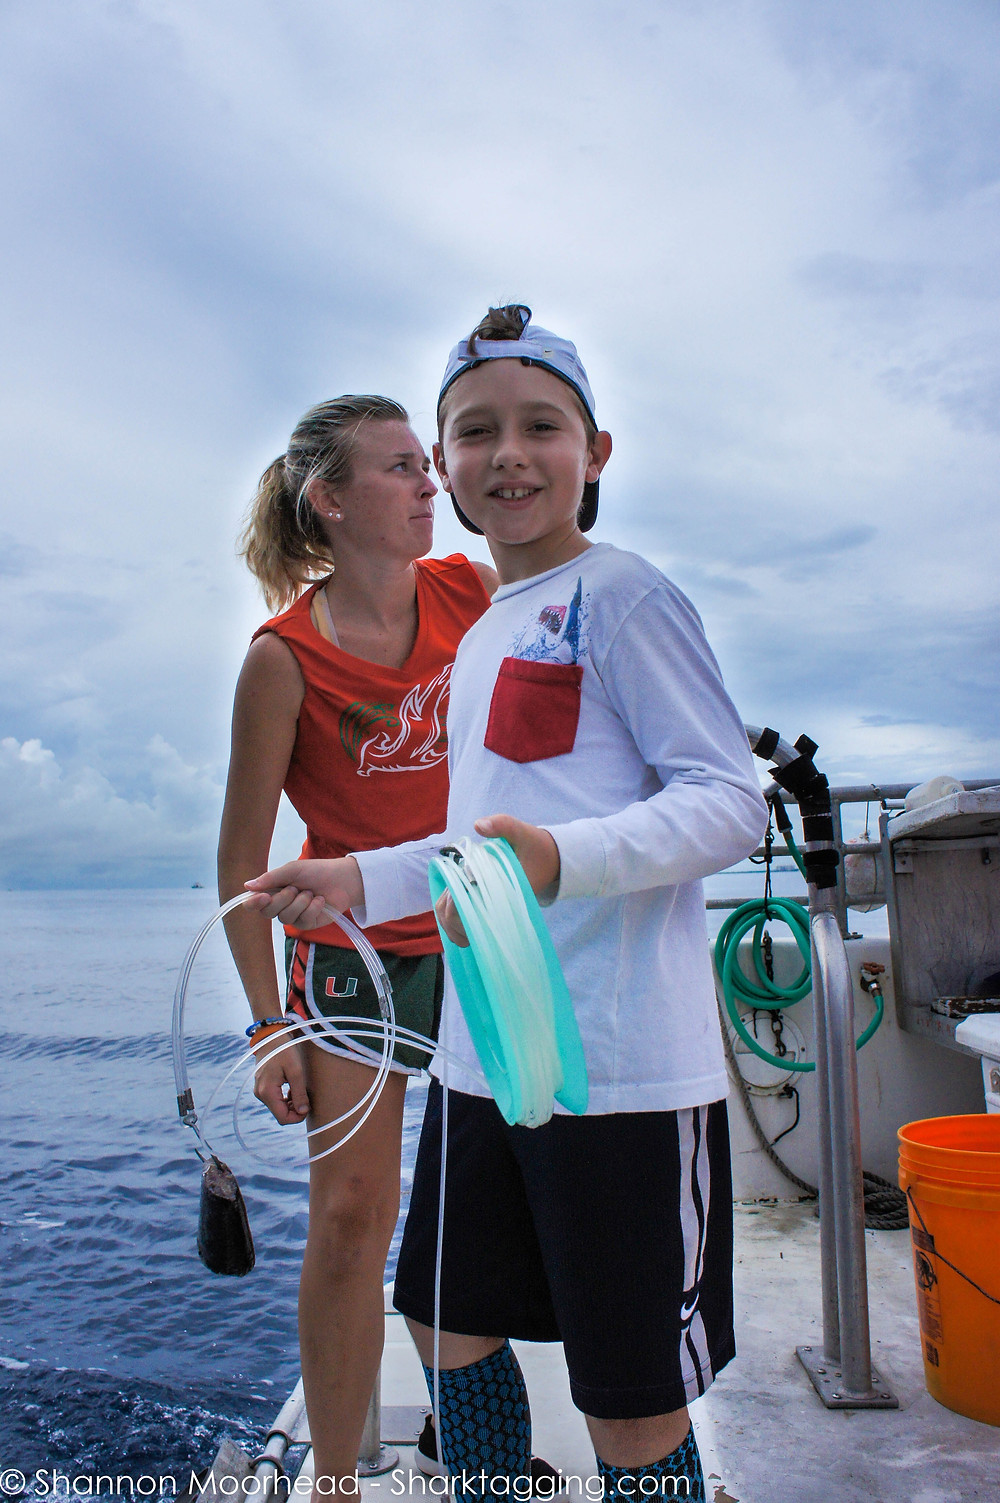 Jake ready to tag sharks with University of Miami